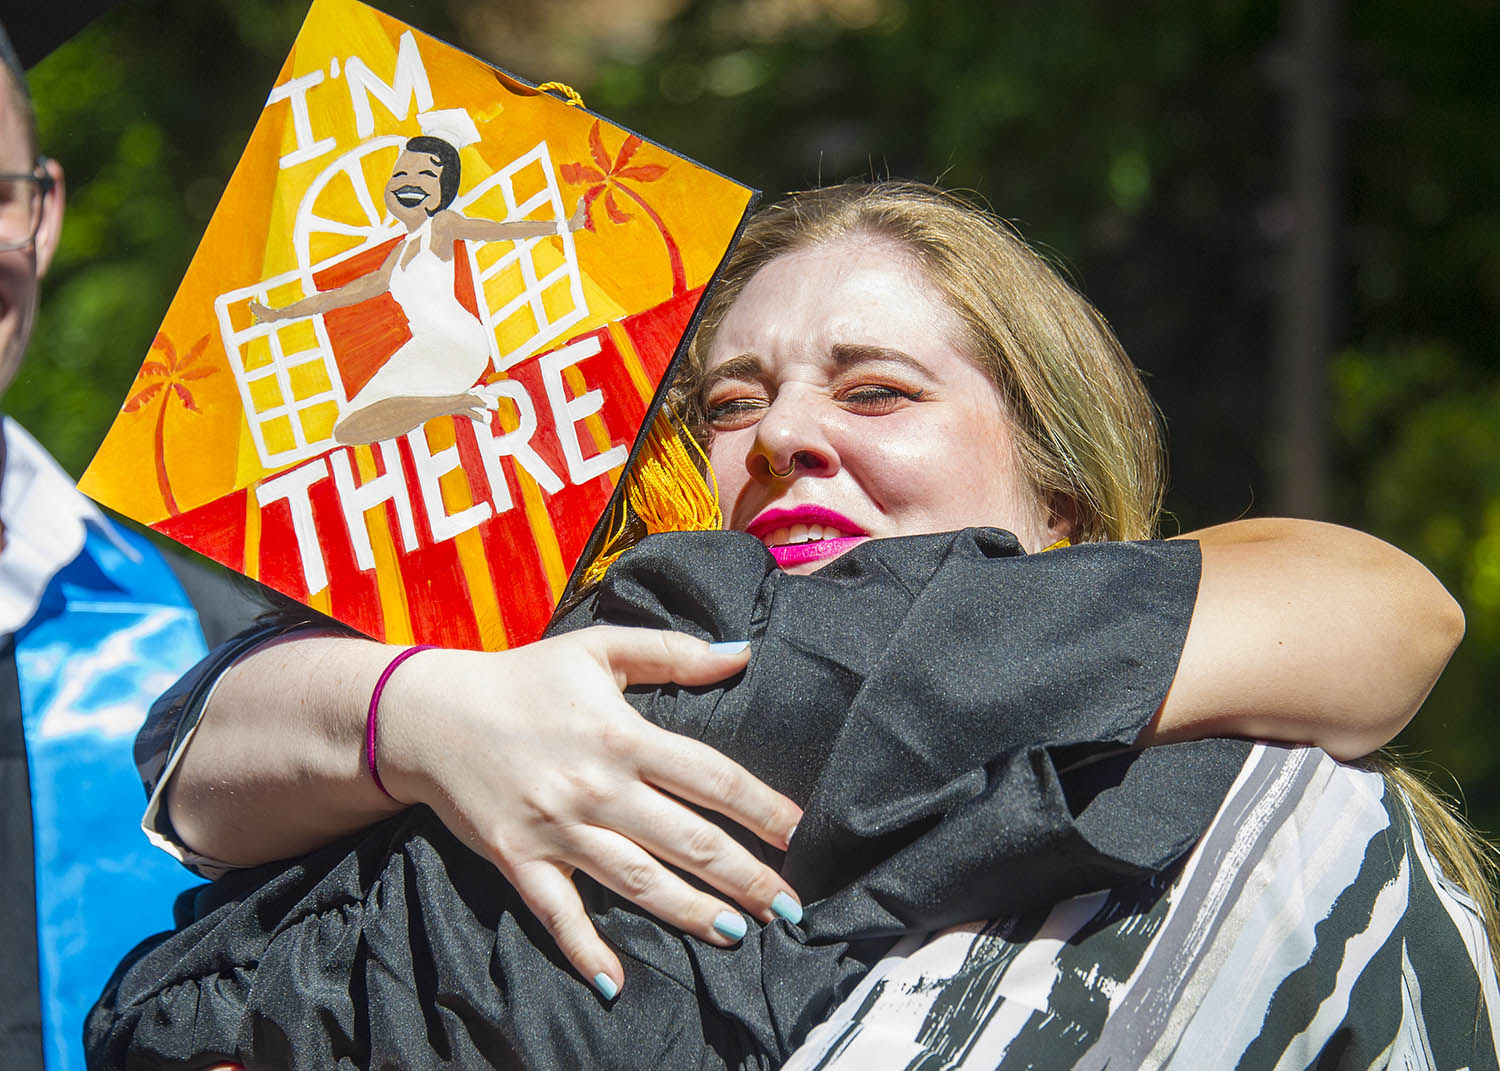 A student hugging another student with a decorated cap and gown.